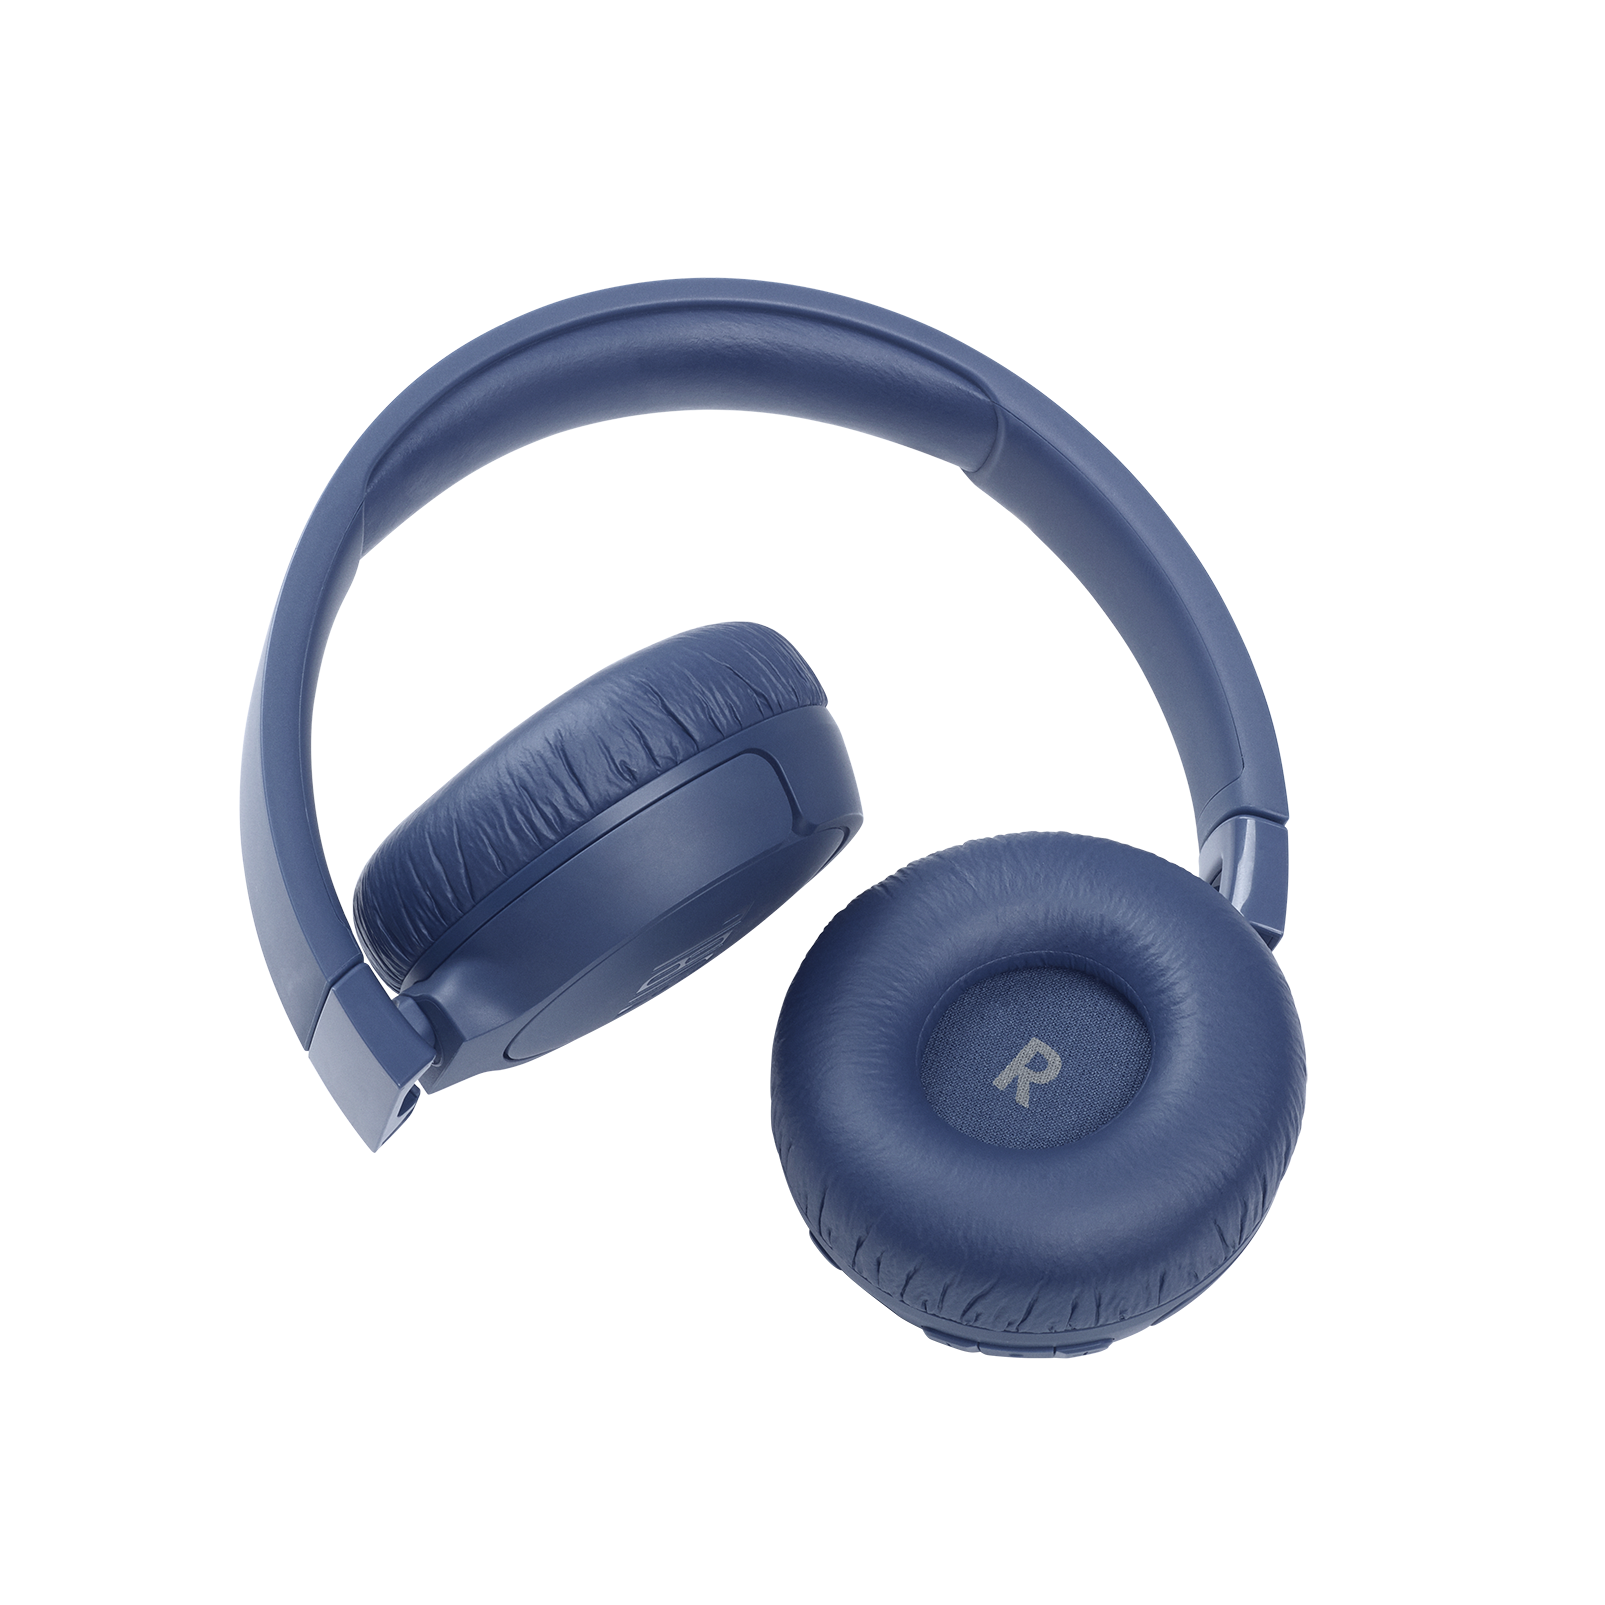 JBL Tune 660NC - Blue - Wireless, on-ear, active noise-cancelling headphones. - Detailshot 5